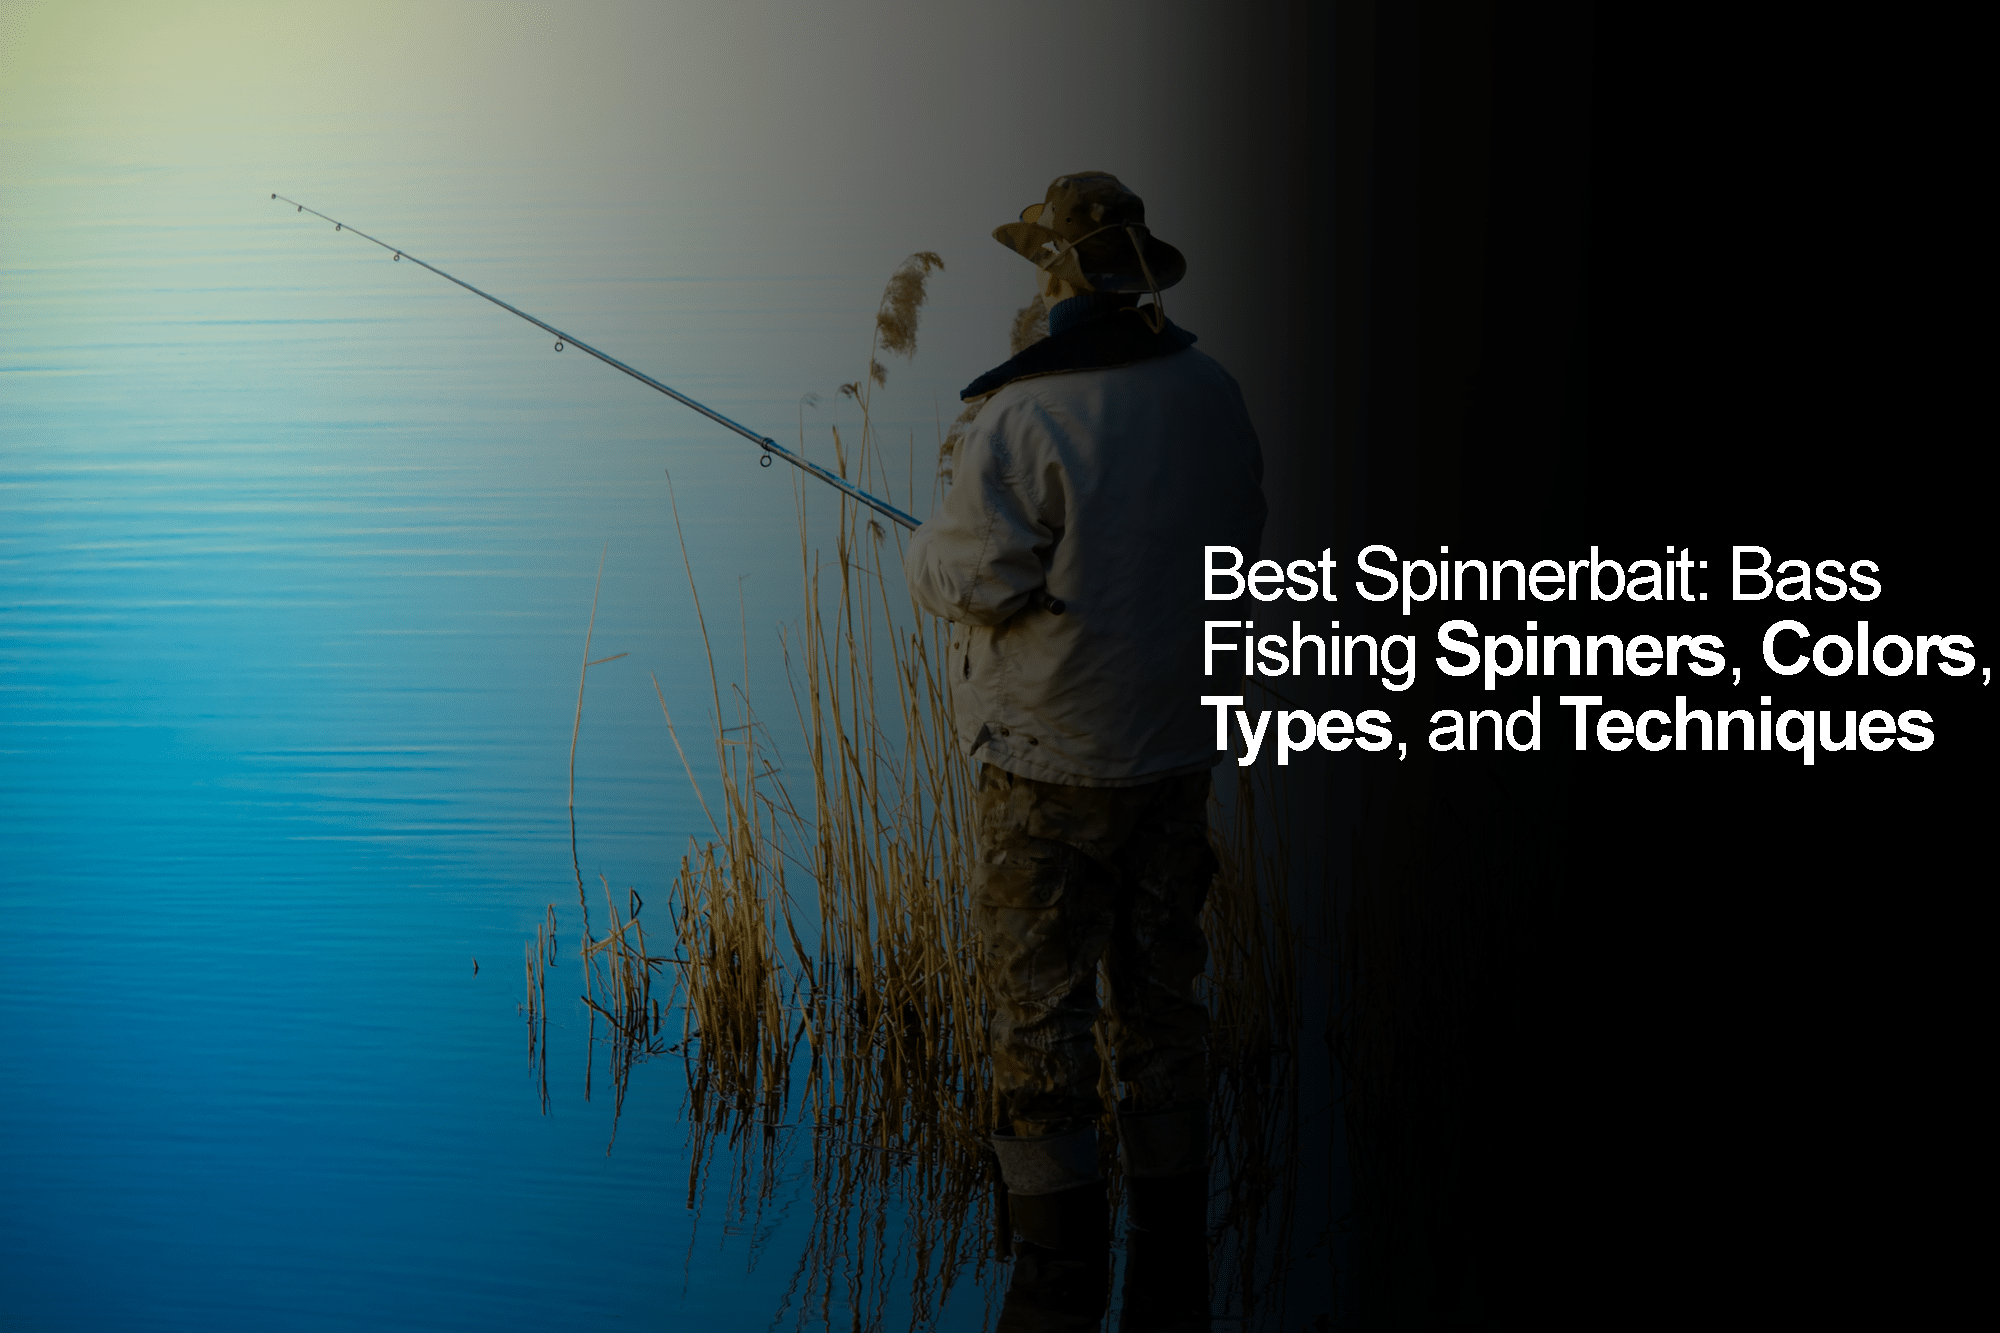 Best Spinnerbait: Bass Fishing Spinners, Colors, Types, and Techniques